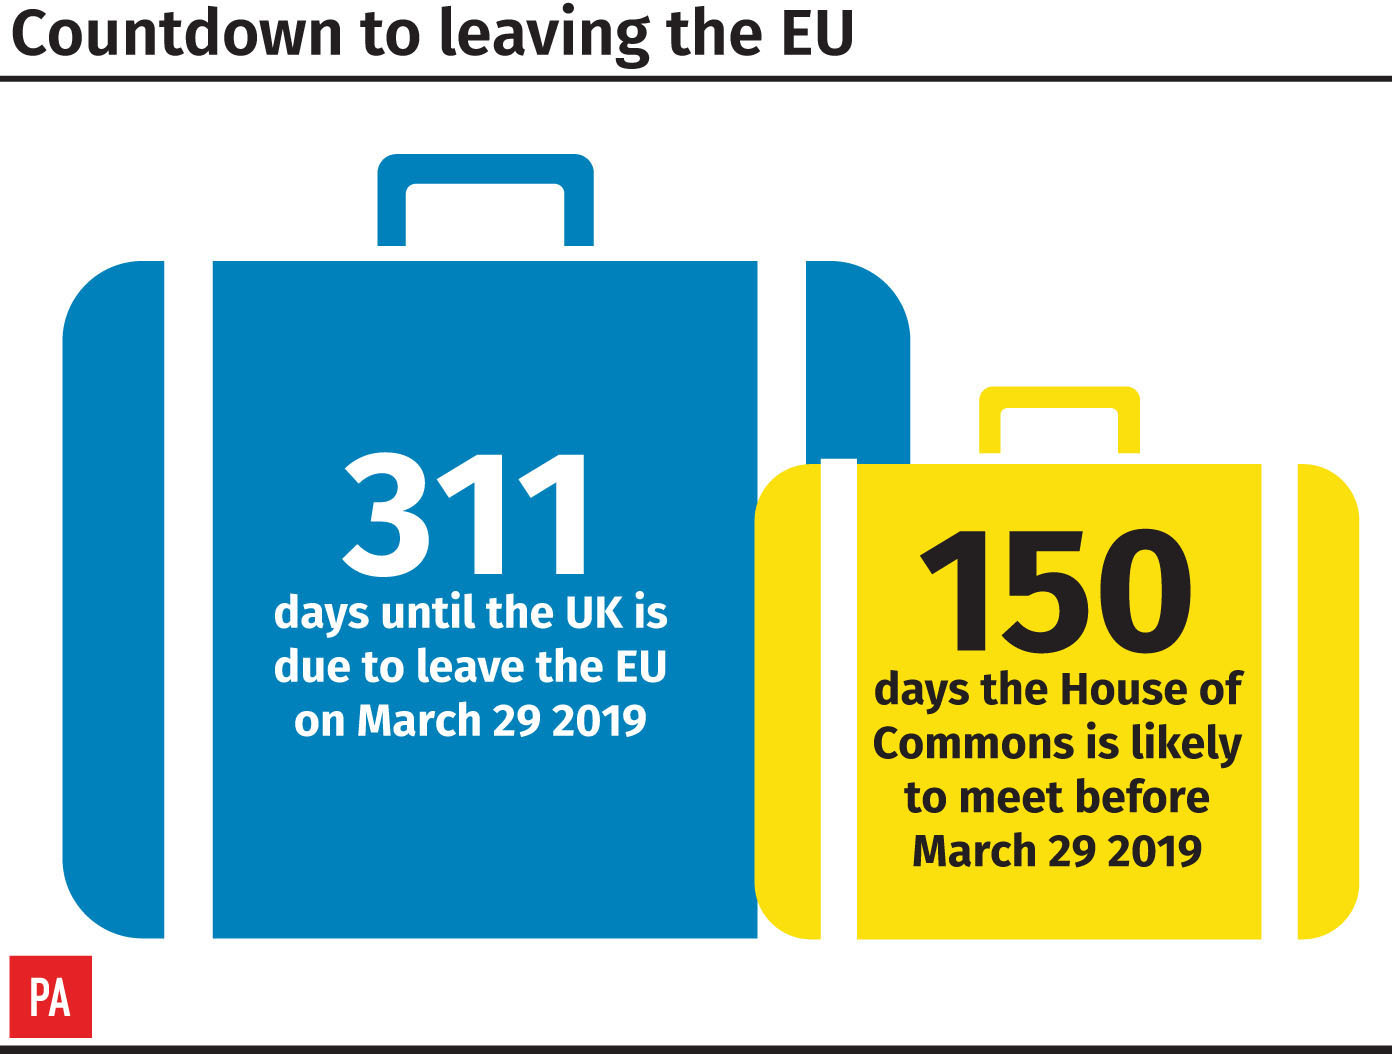 Countdown to leaving the EU (PA Graphics)